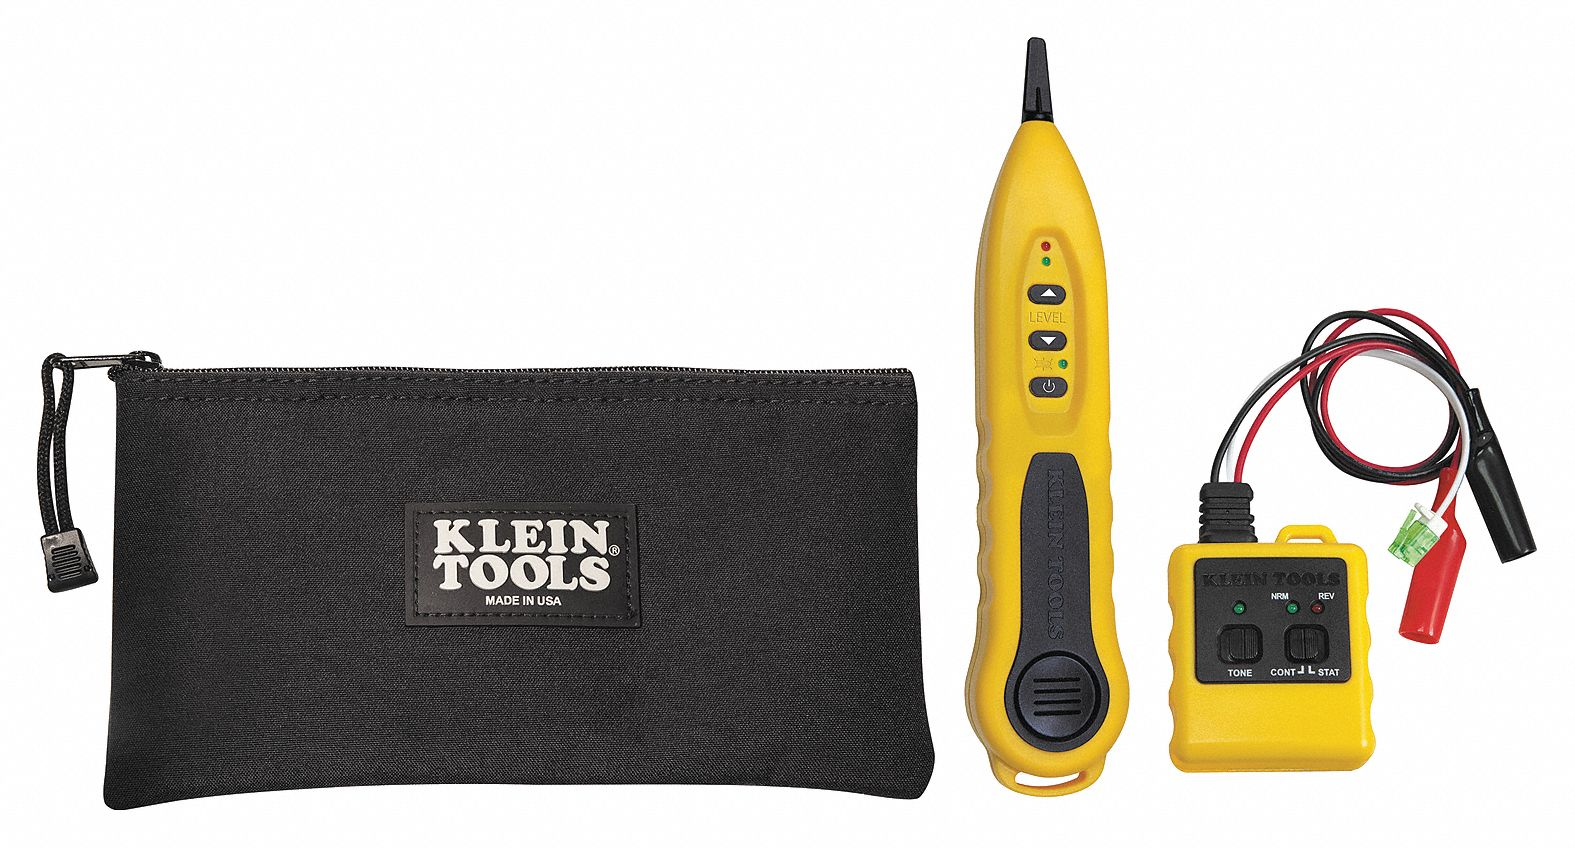 KLEIN TOOLS Tone Generator and Probe Kit Display: LED Adapter Type ...